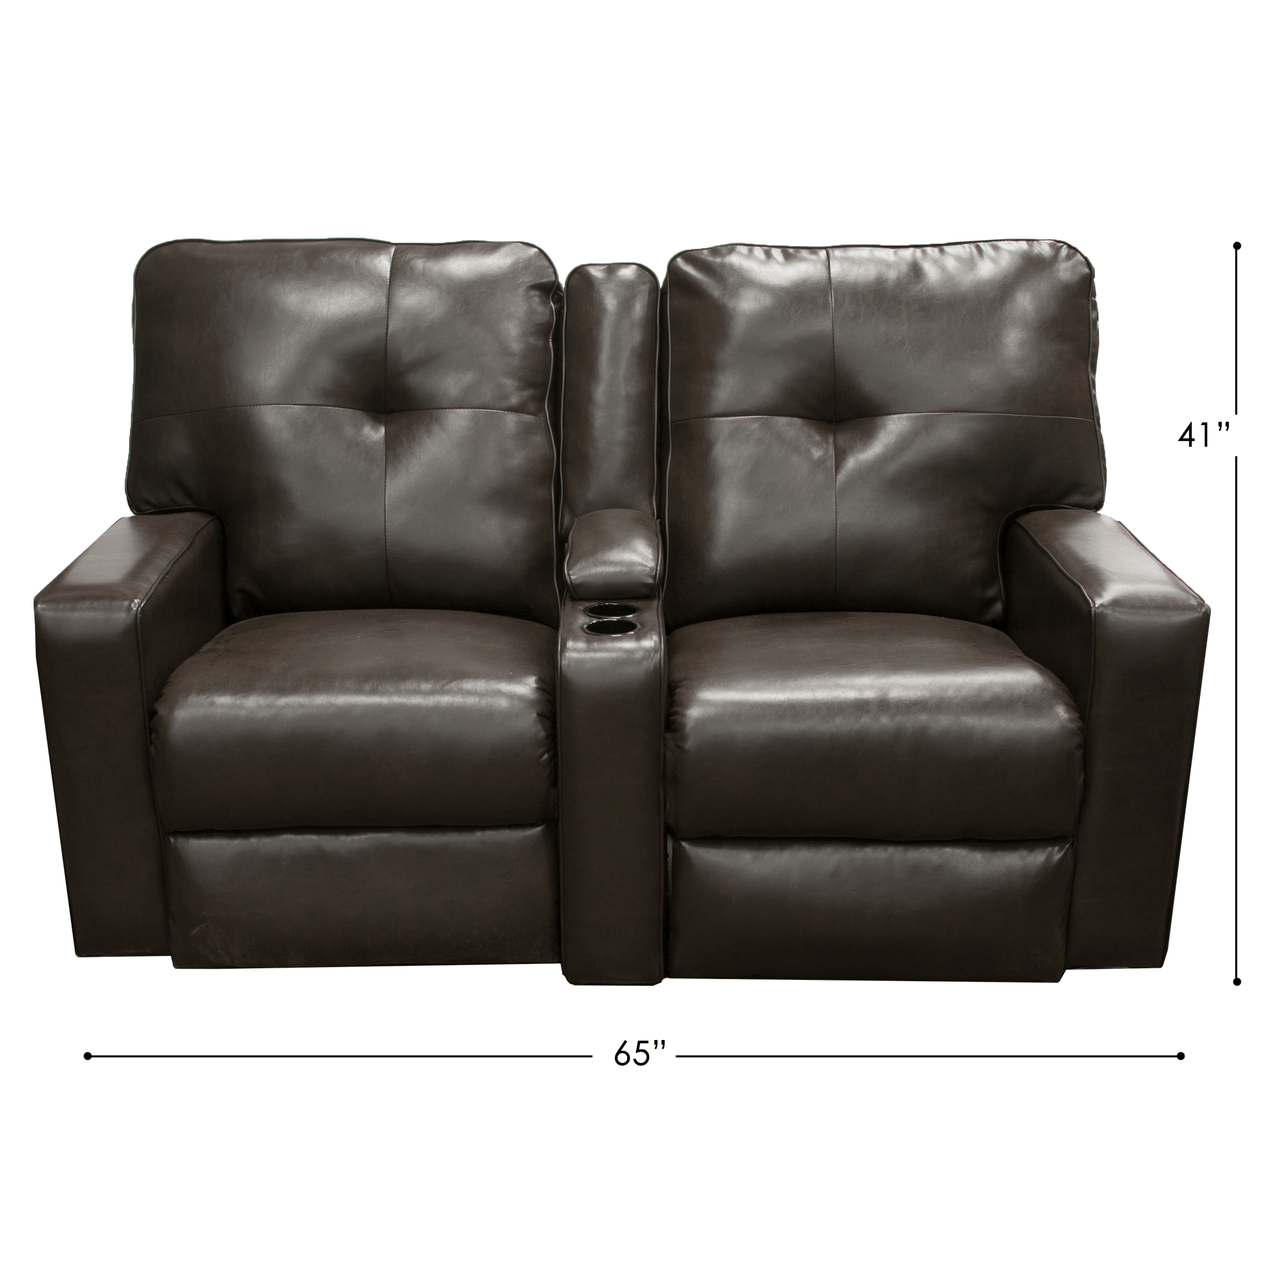 recliner sofa for rv small room bed chocolate reclining couch parts nation